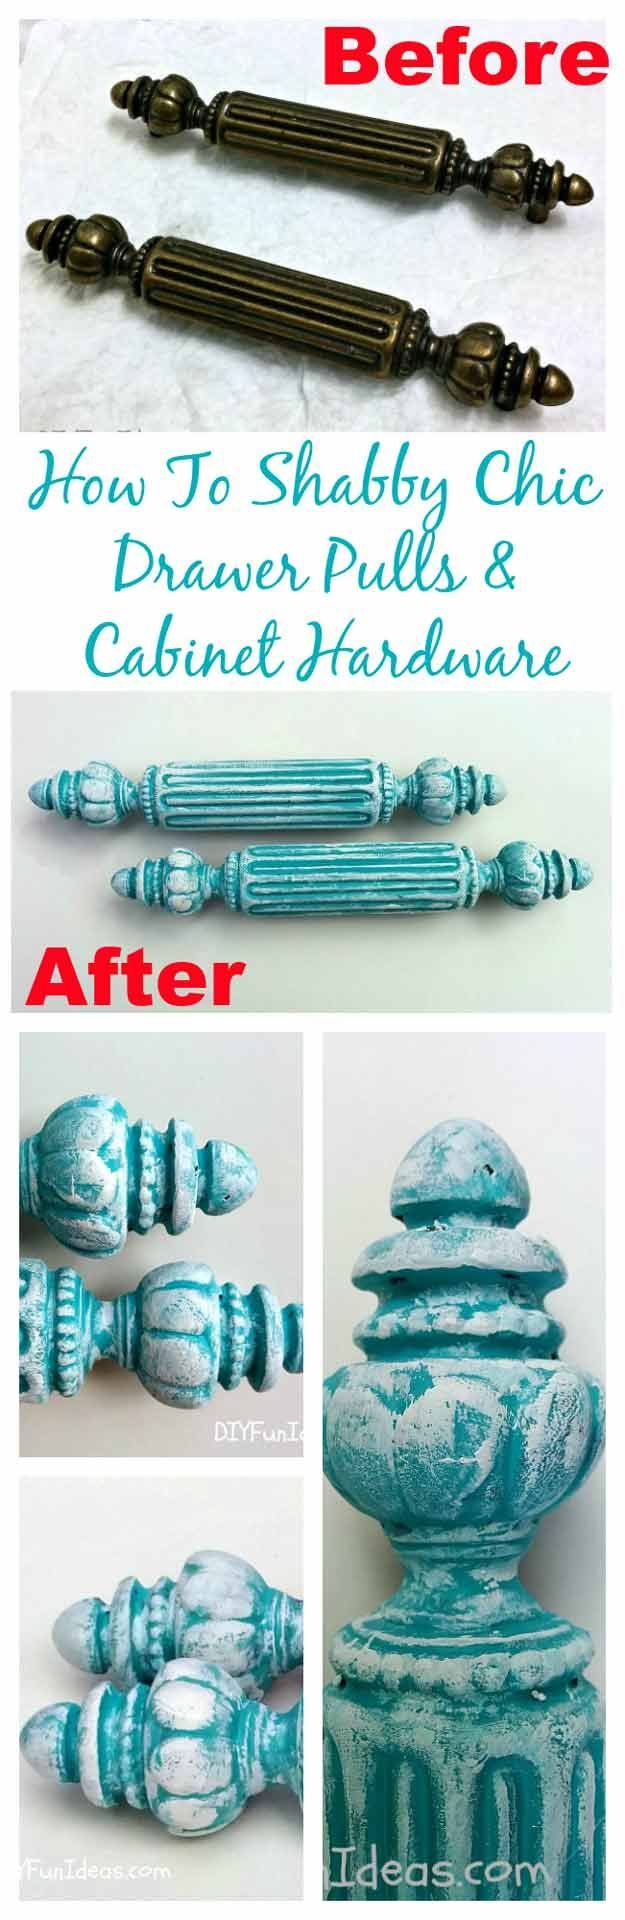 DIY Vintage Distressed Shabby Chic Furniture Ideas | Shabby Chic Drawer Pulls and Cabinet Hardware by DIY Ready at http://diyready.com/12-diy-shabby-chic-furniture-ideas/